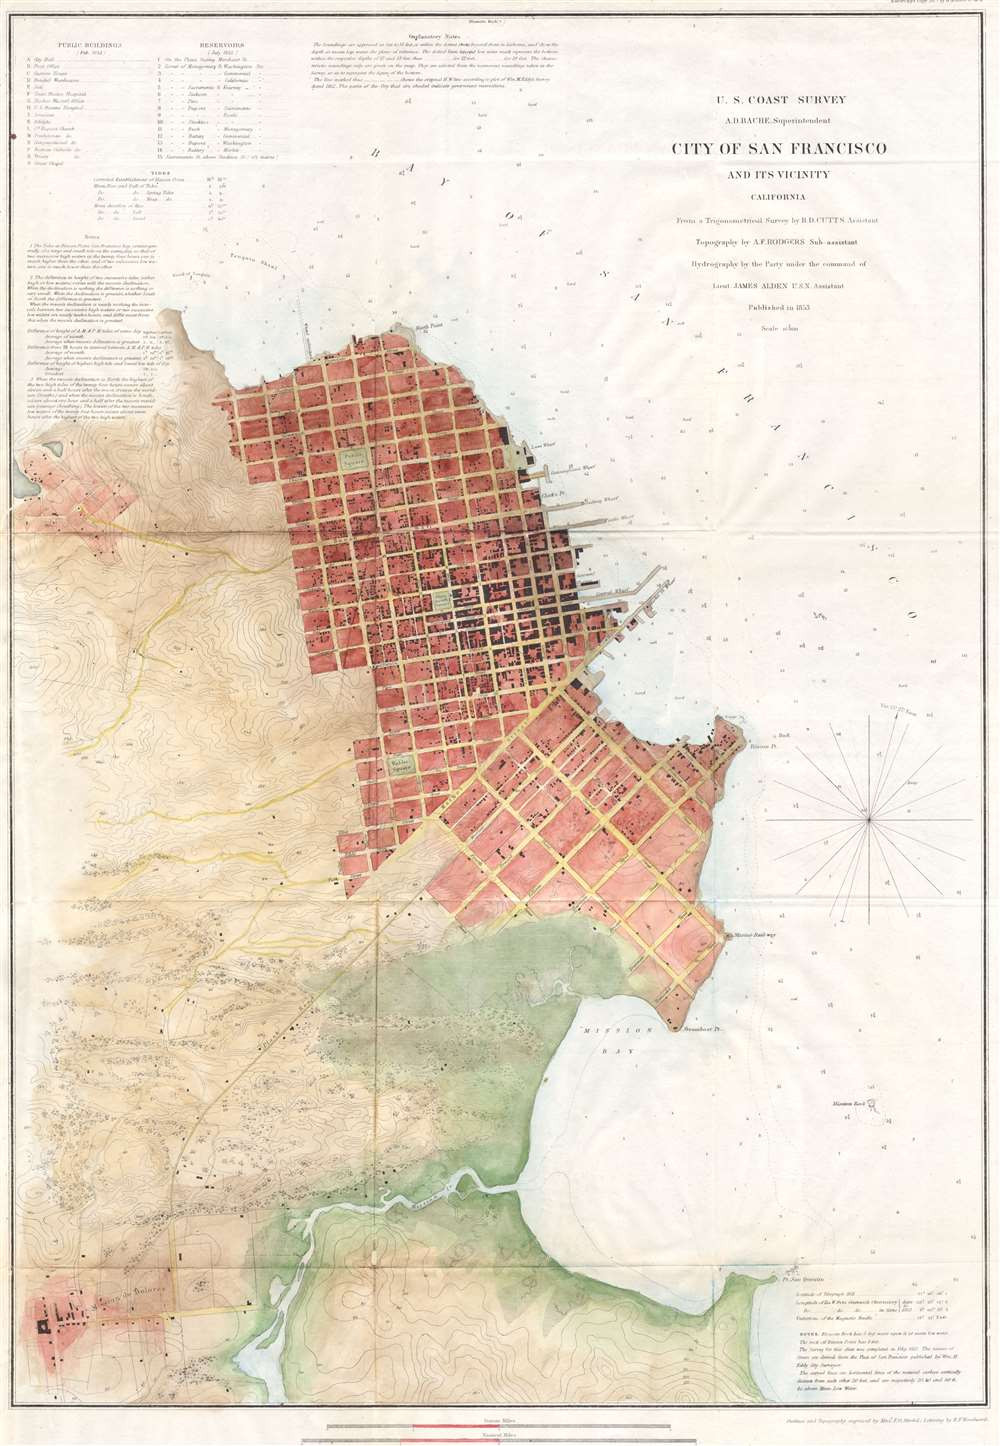 City of San Francisco and its Vicinity California.